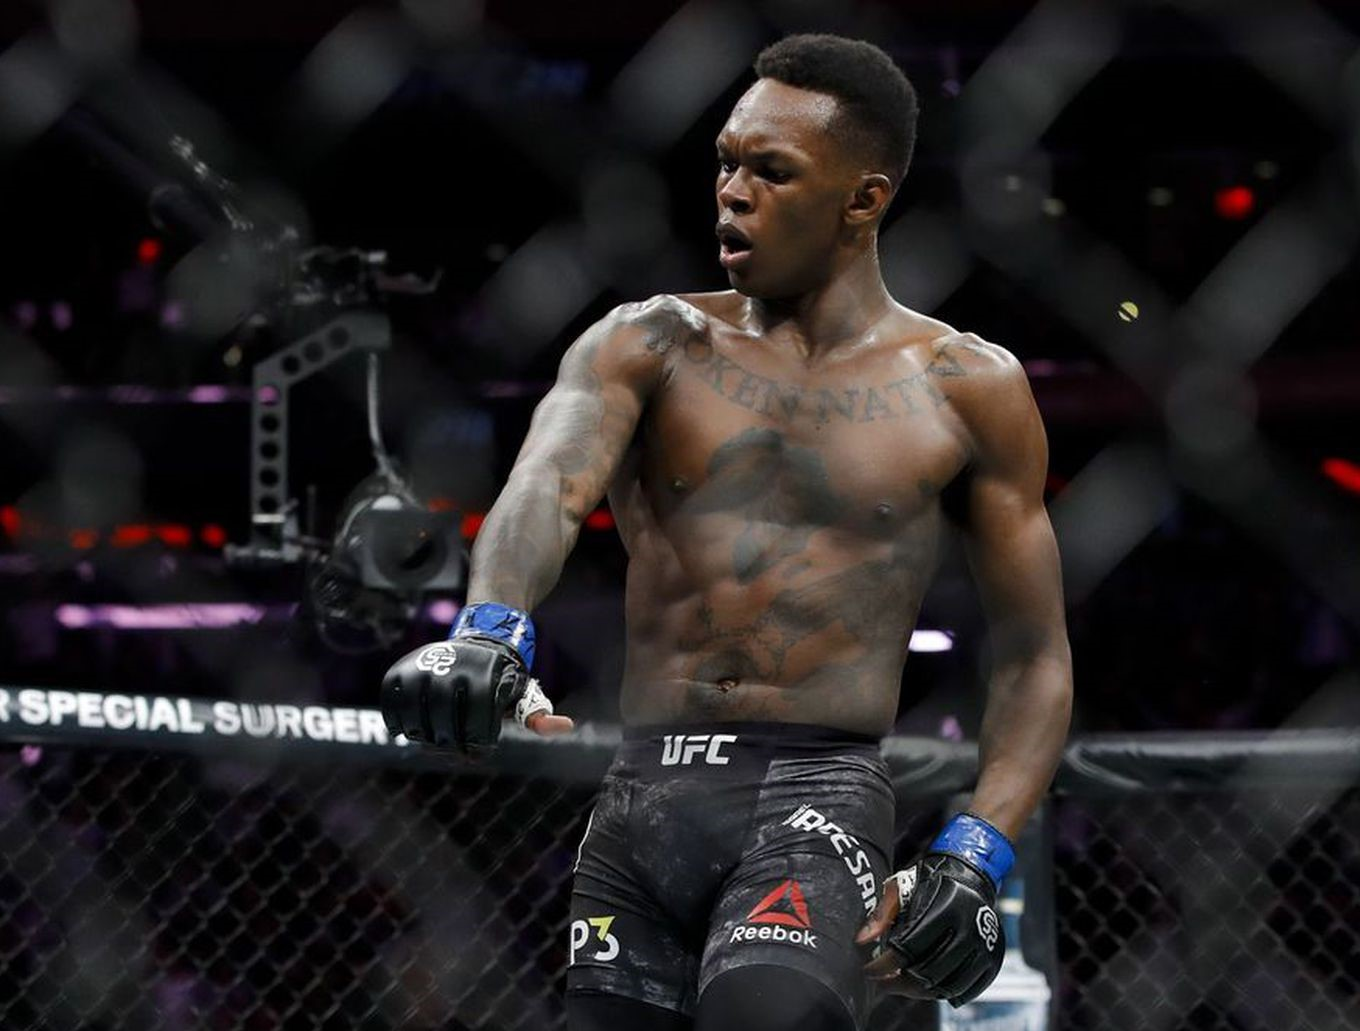 Watch: Israel Adesanya says Jon Jones is one of the greats - but that he's tarnished his own legacy! - Adesanya